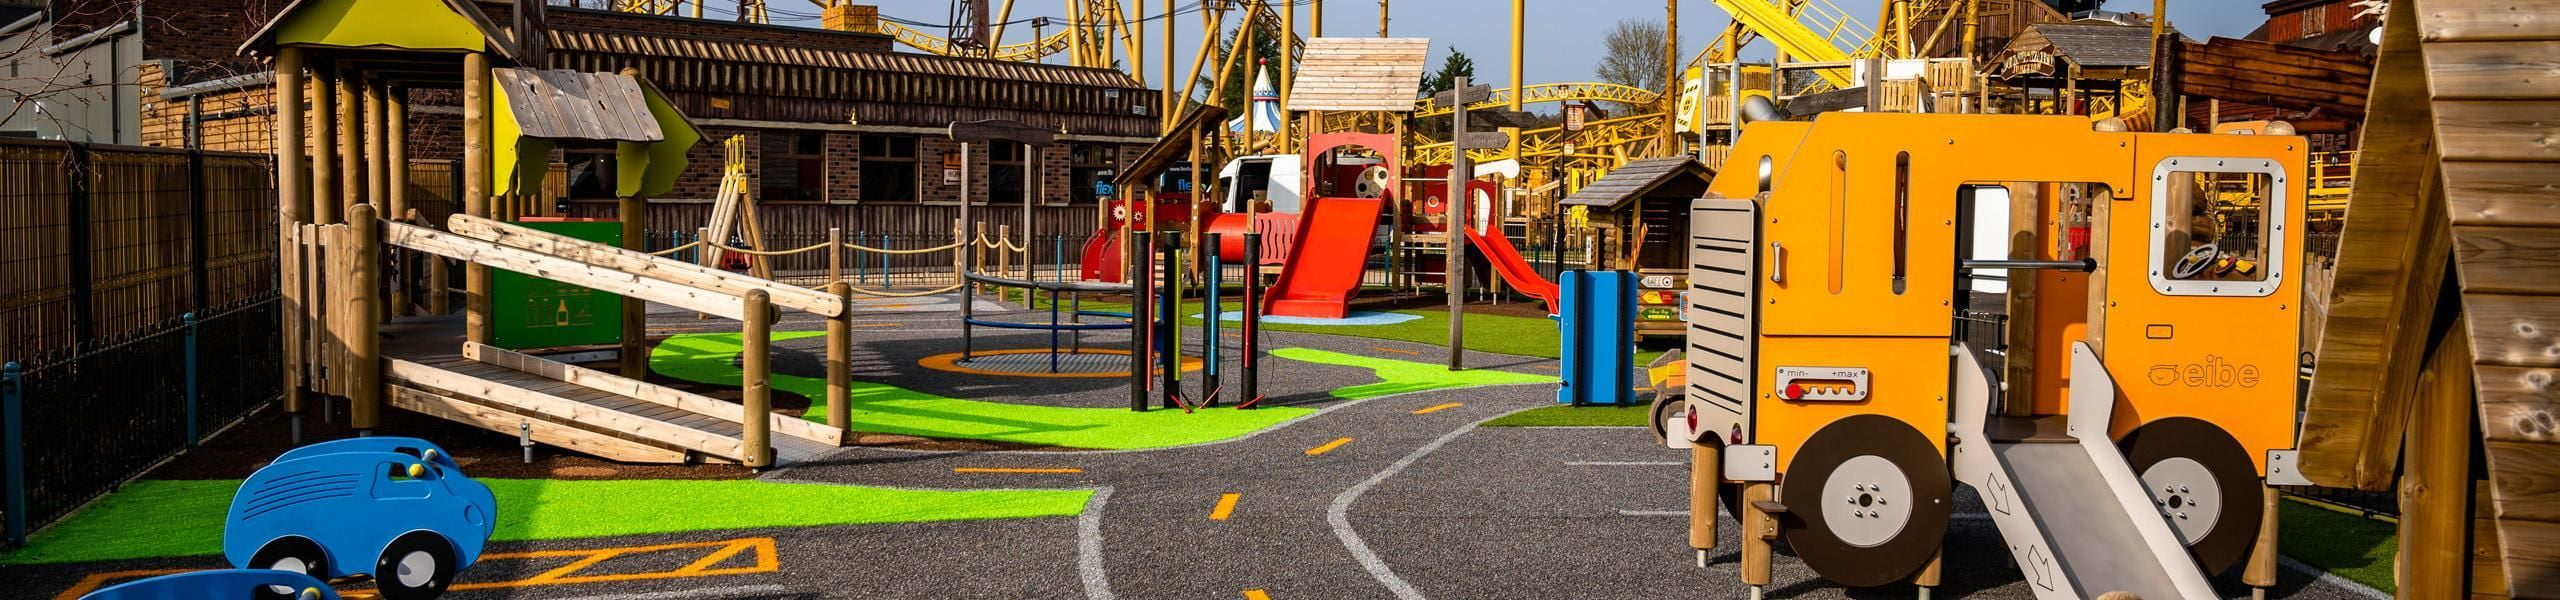 Parking Lot Tots Playground | Paultons Park